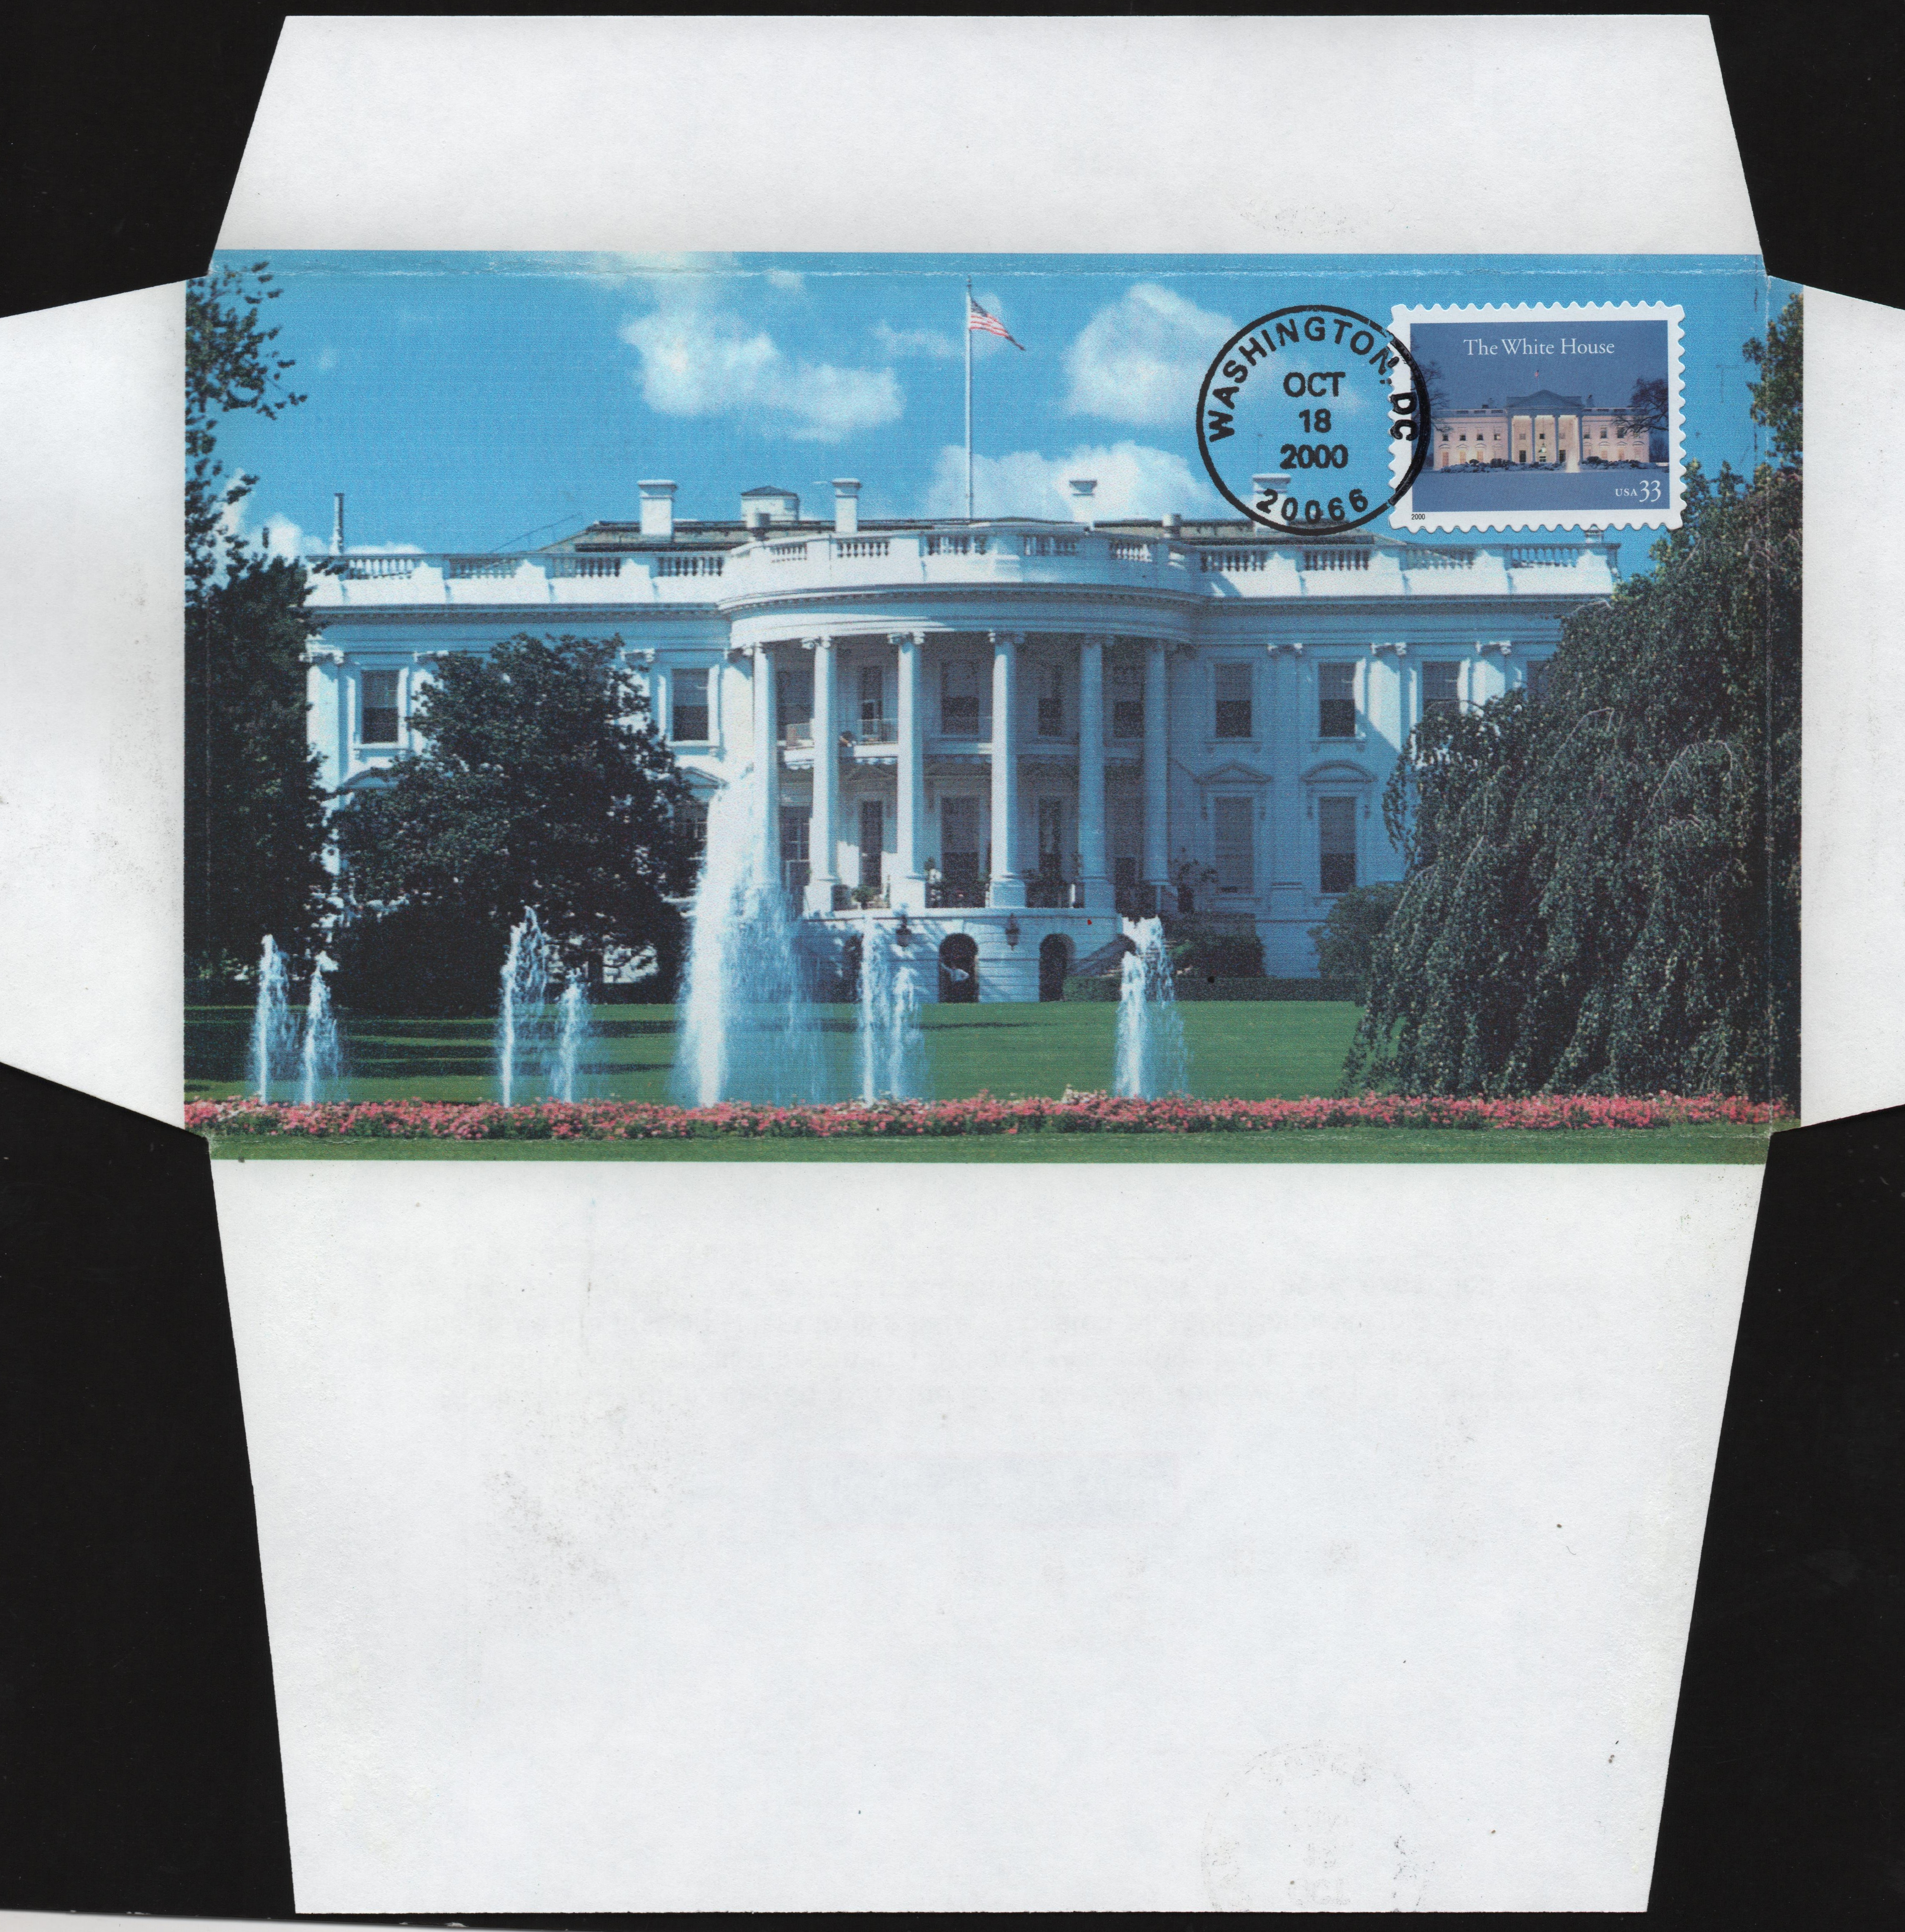 United States - Scott #3445 (2000) first day cover; opening the envelope flaps on this cover reveals an image ot the south portal of the White House in Washington, D.C.